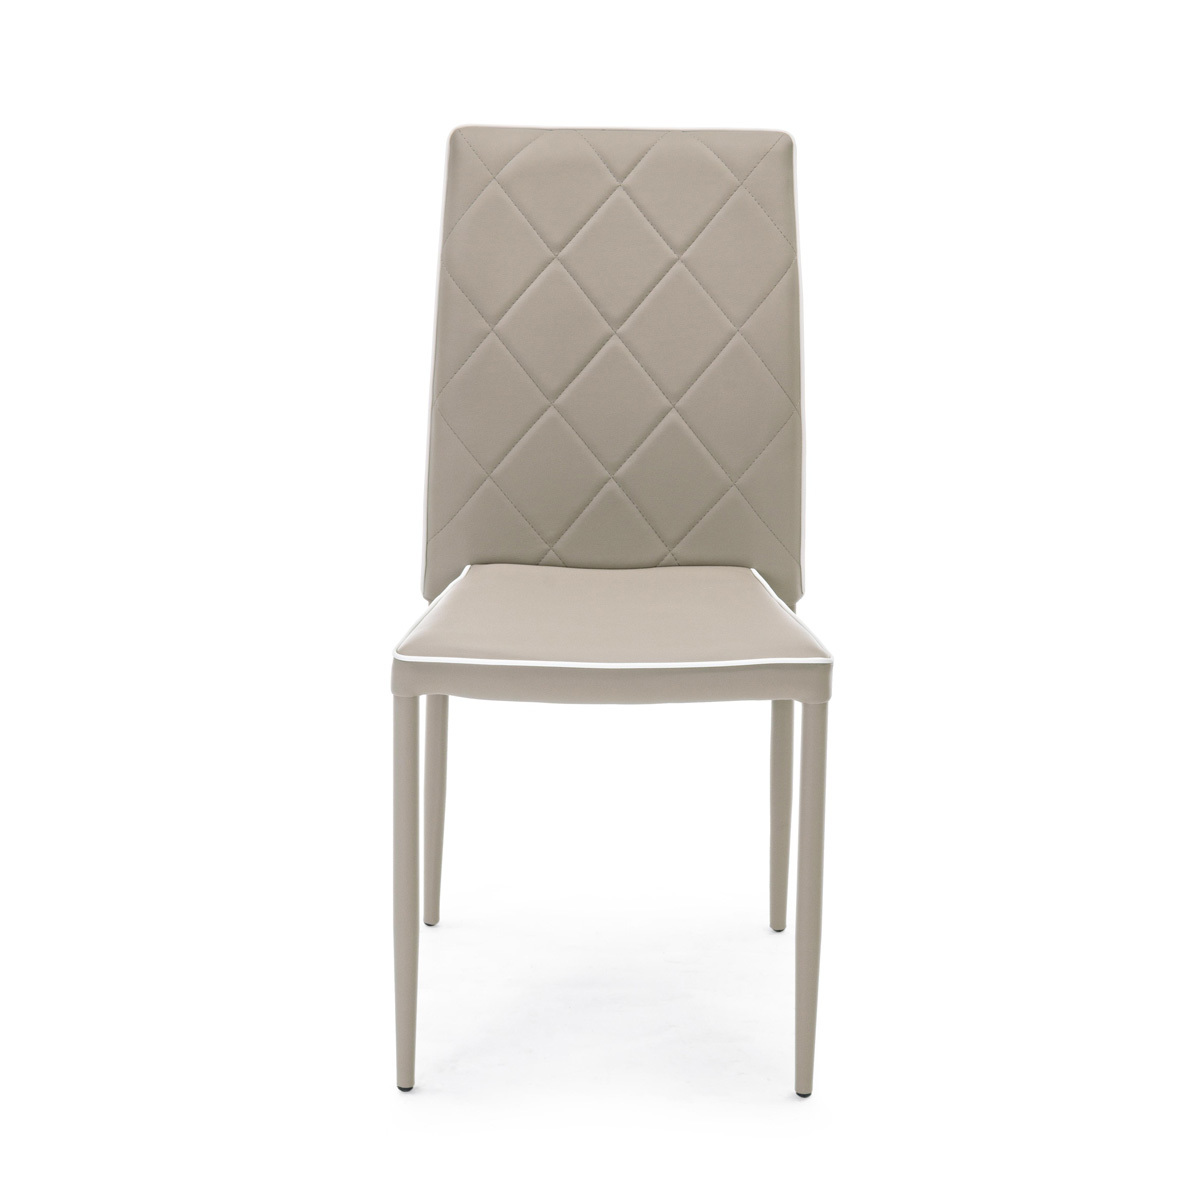 Photos 2: Bizzotto Chair covered in faux leather - tortora 0730786